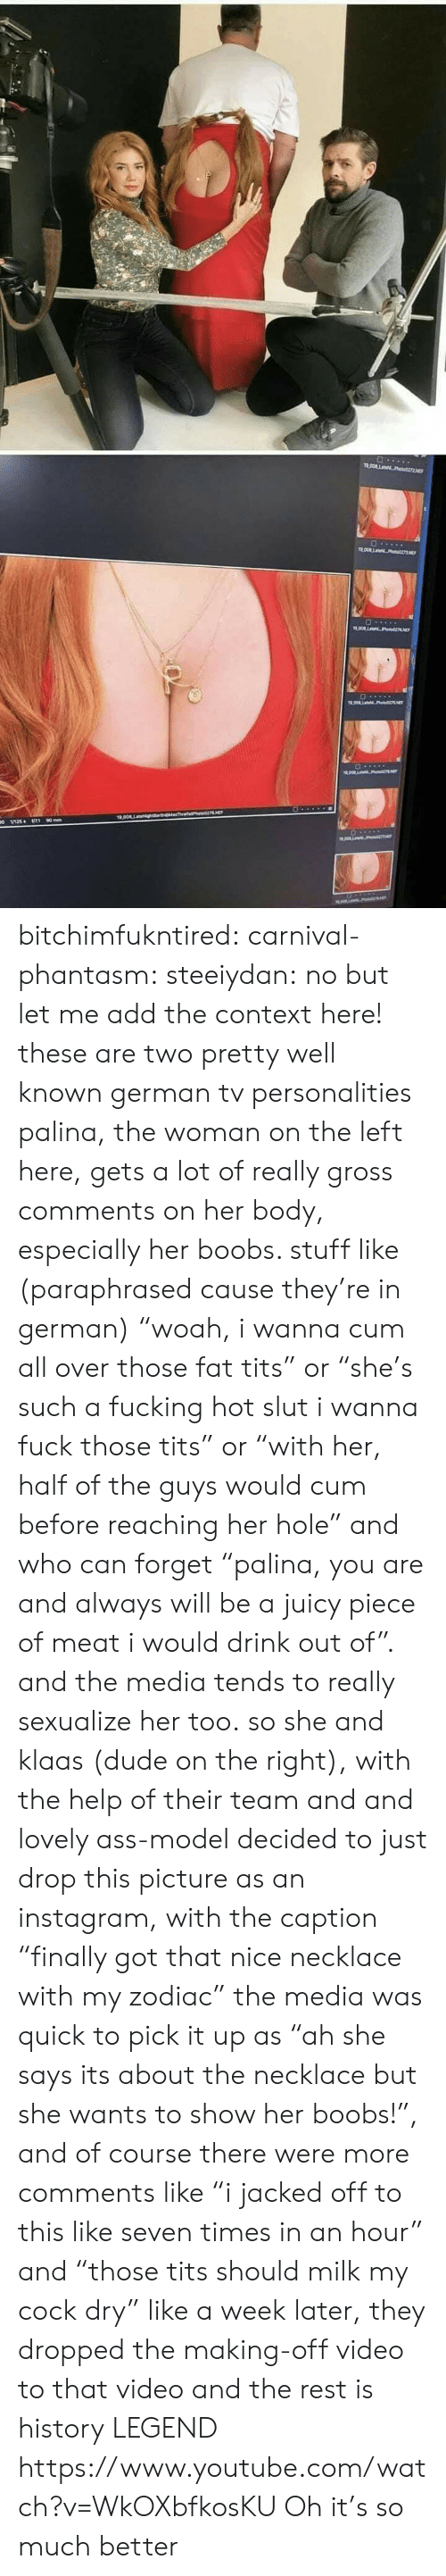 "Ass, Cum, and Dude: bitchimfukntired:  carnival-phantasm: steeiydan:  no but let me add the context here! these are two pretty well known german tv personalities palina, the woman on the left here, gets a lot of really gross comments on her body, especially her boobs. stuff like (paraphrased cause they're in german) ""woah, i wanna cum all over those fat tits"" or ""she's such a fucking hot slut i wanna fuck those tits"" or ""with her, half of the guys would cum before reaching her hole"" and who can forget ""palina, you are and always will be a juicy piece of meat i would drink out of"". and the media tends to really sexualize her too. so she and klaas (dude on the right), with the help of their team and and lovely ass-model decided to just drop this picture as an instagram, with the caption ""finally got that nice necklace with my zodiac"" the media was quick to pick it up as ""ah she says its about the necklace but she wants to show her boobs!"", and of course there were more comments like ""i jacked off to this like seven times in an hour"" and ""those tits should milk my cock dry""  like a week later, they dropped the making-off video to that video and the rest is history   LEGEND  https://www.youtube.com/watch?v=WkOXbfkosKU  Oh it's so much better"